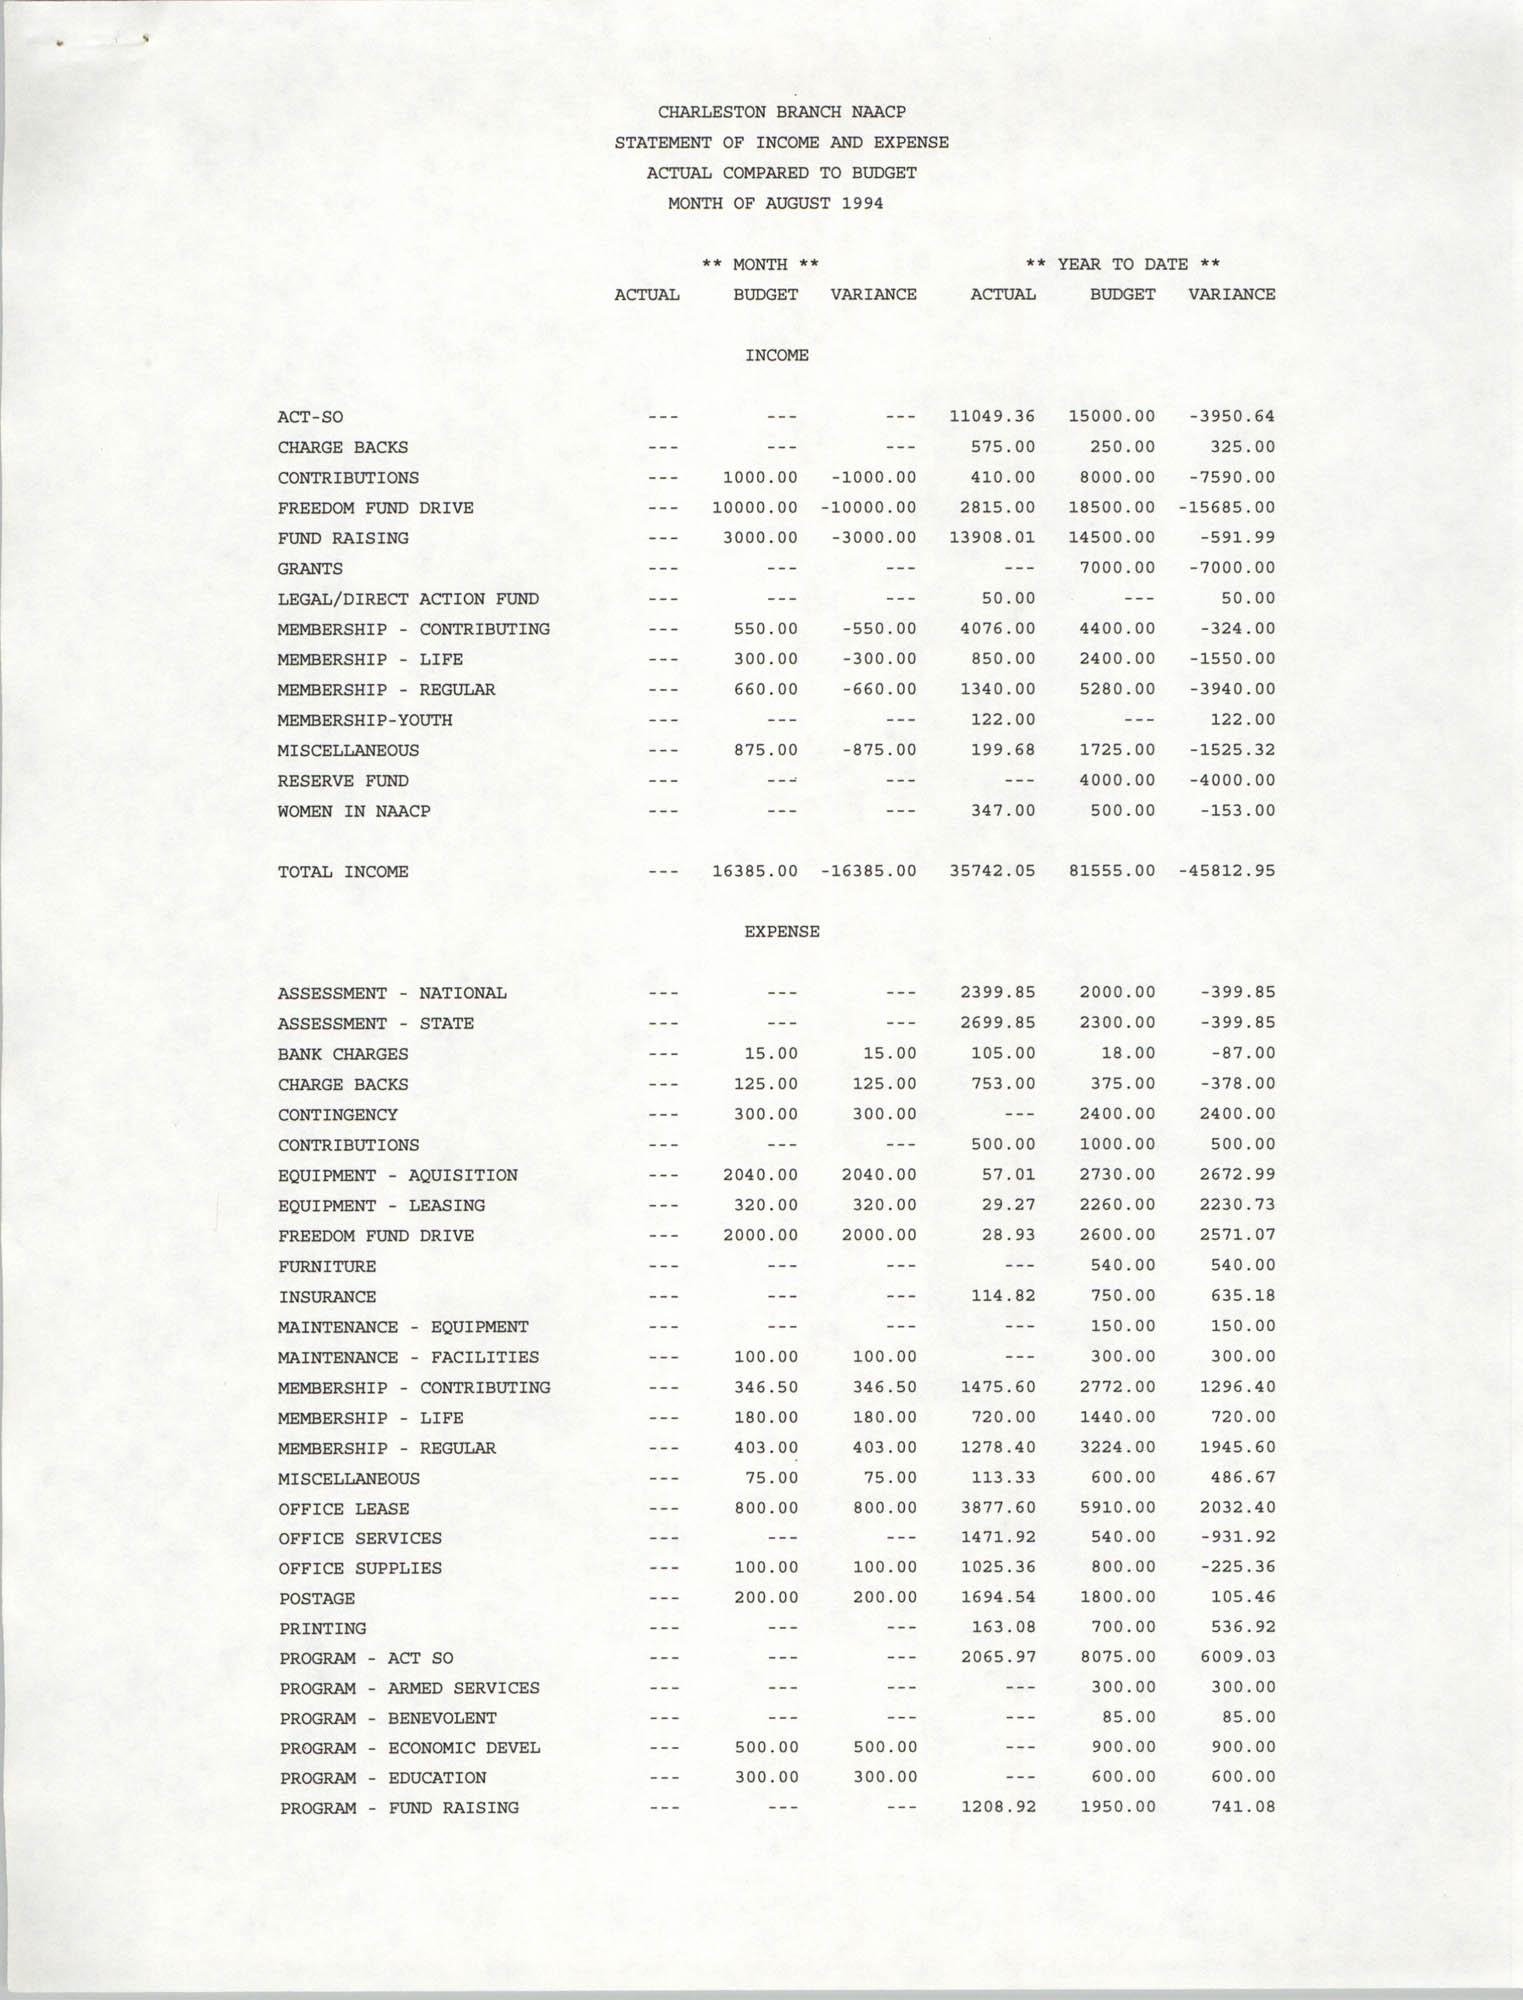 Charleston Branch of the NAACP Statement of Income and Expense, August 1994